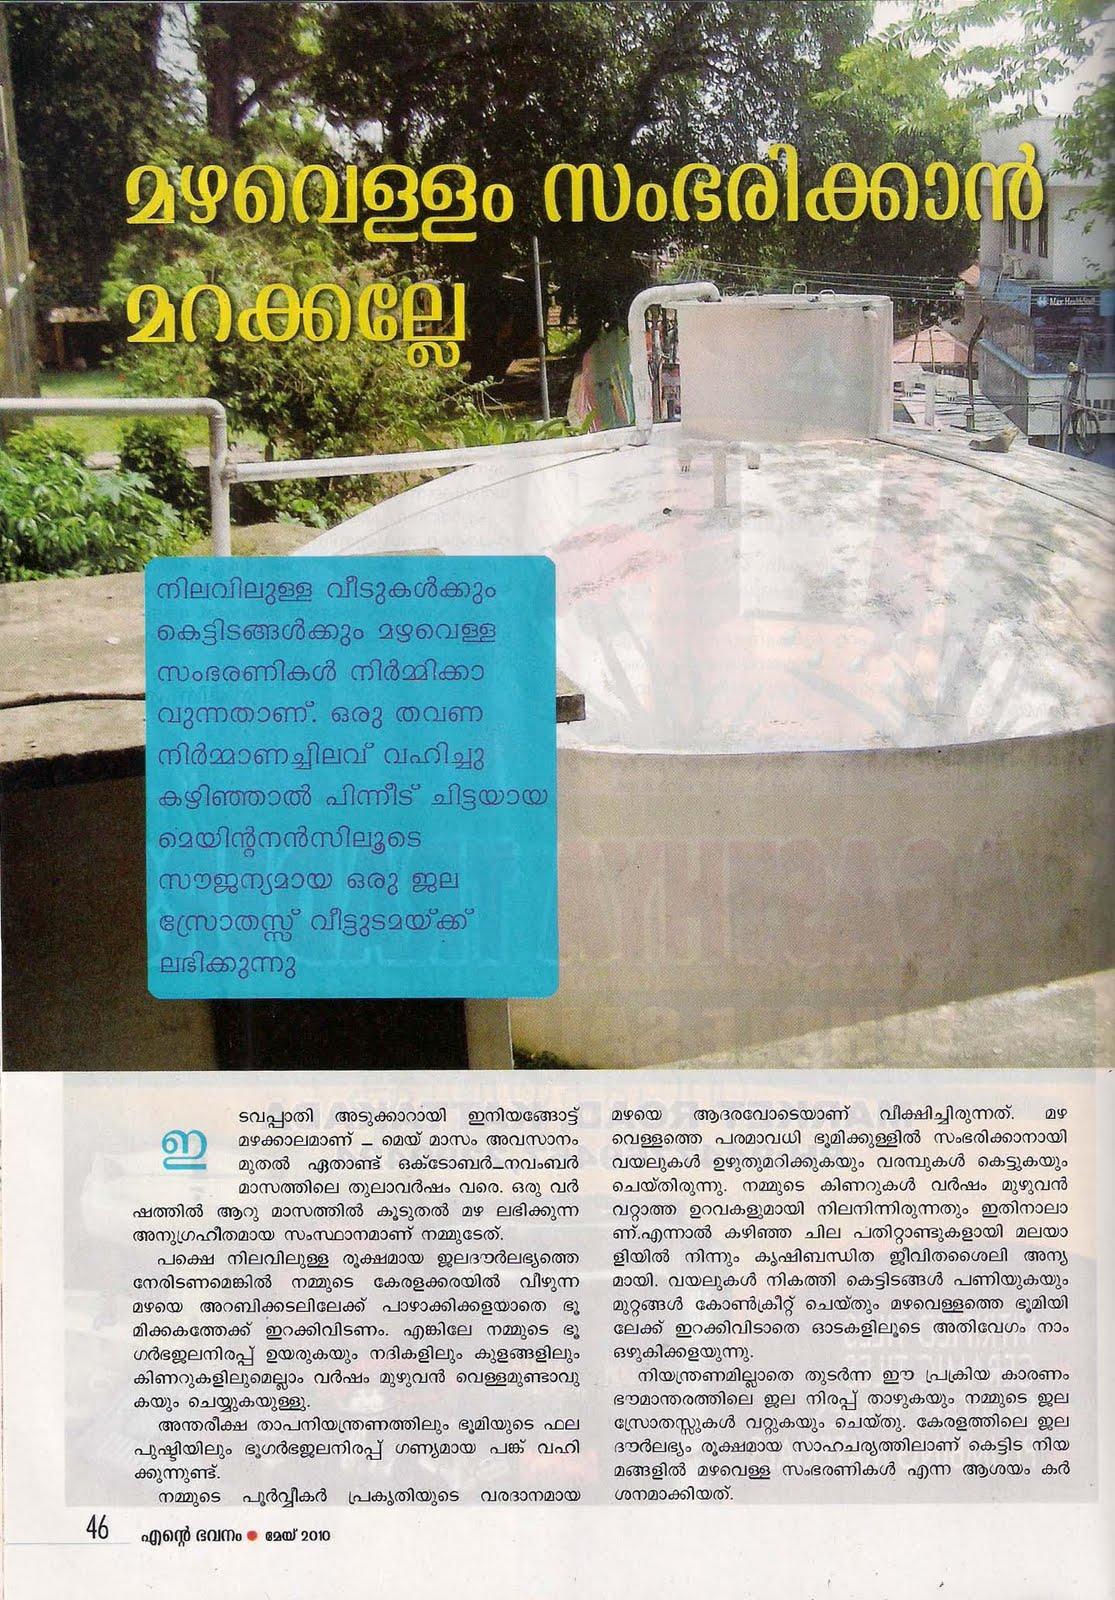 essay rain water harvesting rain water harvesting essay in tamil  keralahousedesigner com malayalam article on rainwater harvesting please click on image to enlarge